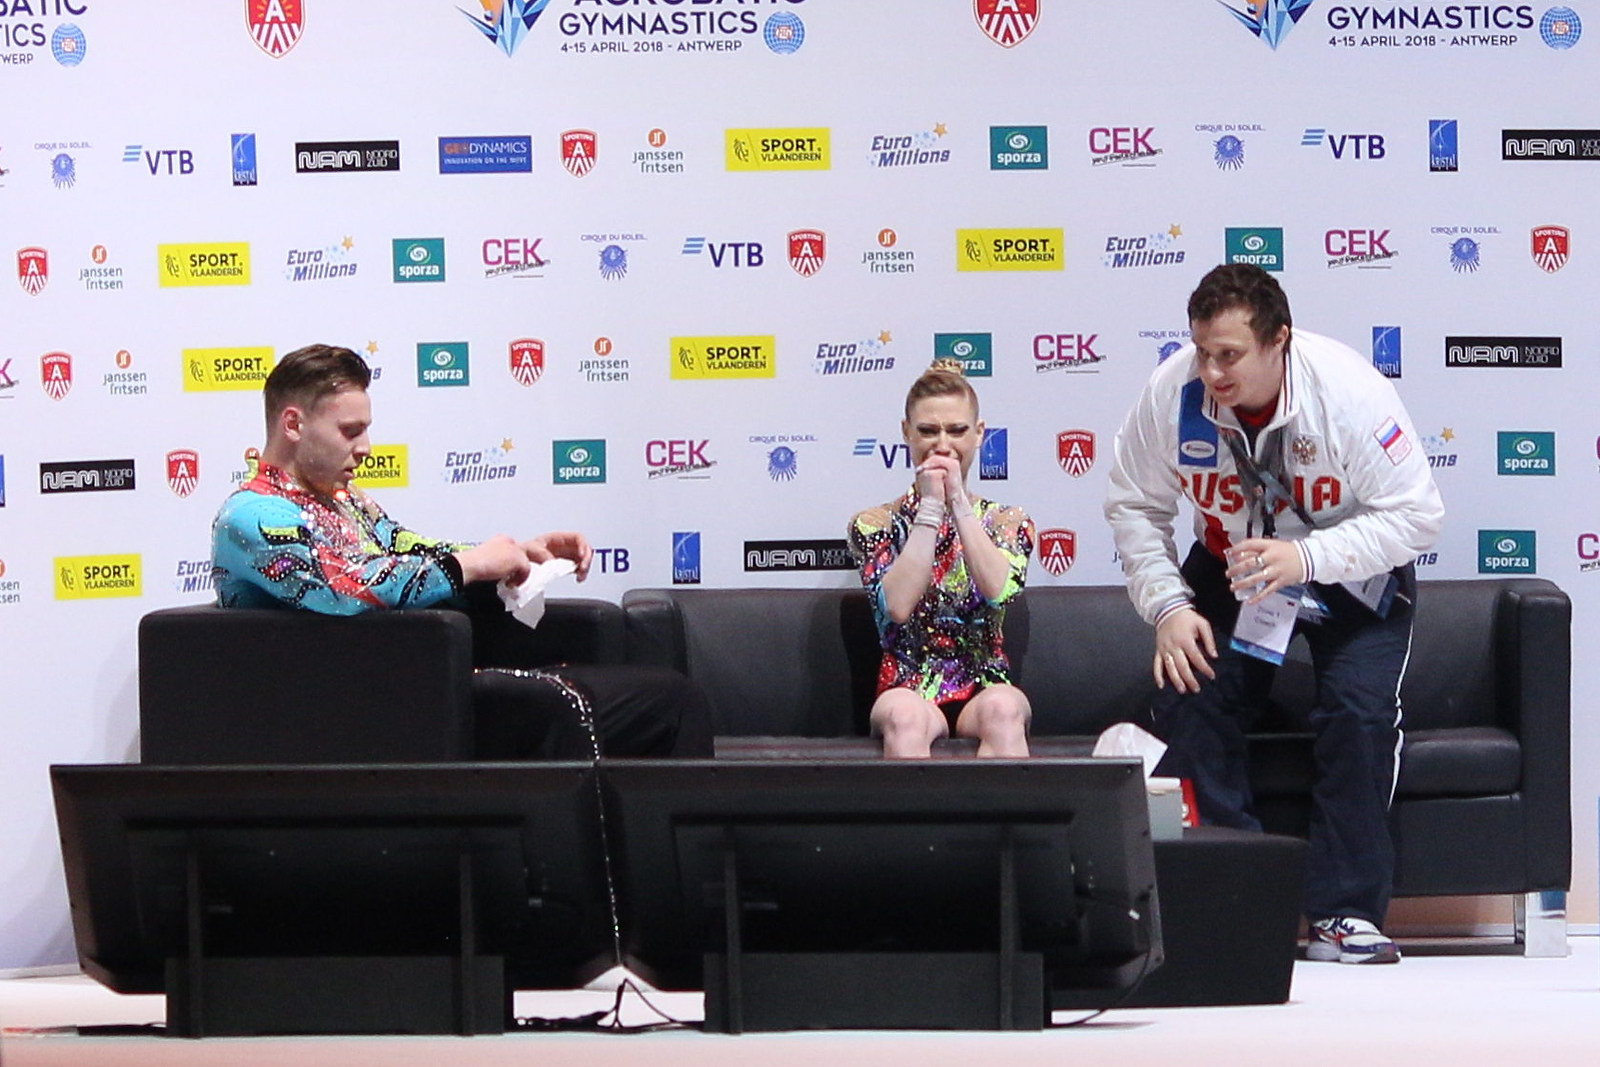 3-times World Champion! - With this performance Marina Chernova became a World Champion for the third time in a row, in 2014 with Revaz Gurgenidze as her partner and, 2016 and 2018 with Georgy Pataraya.